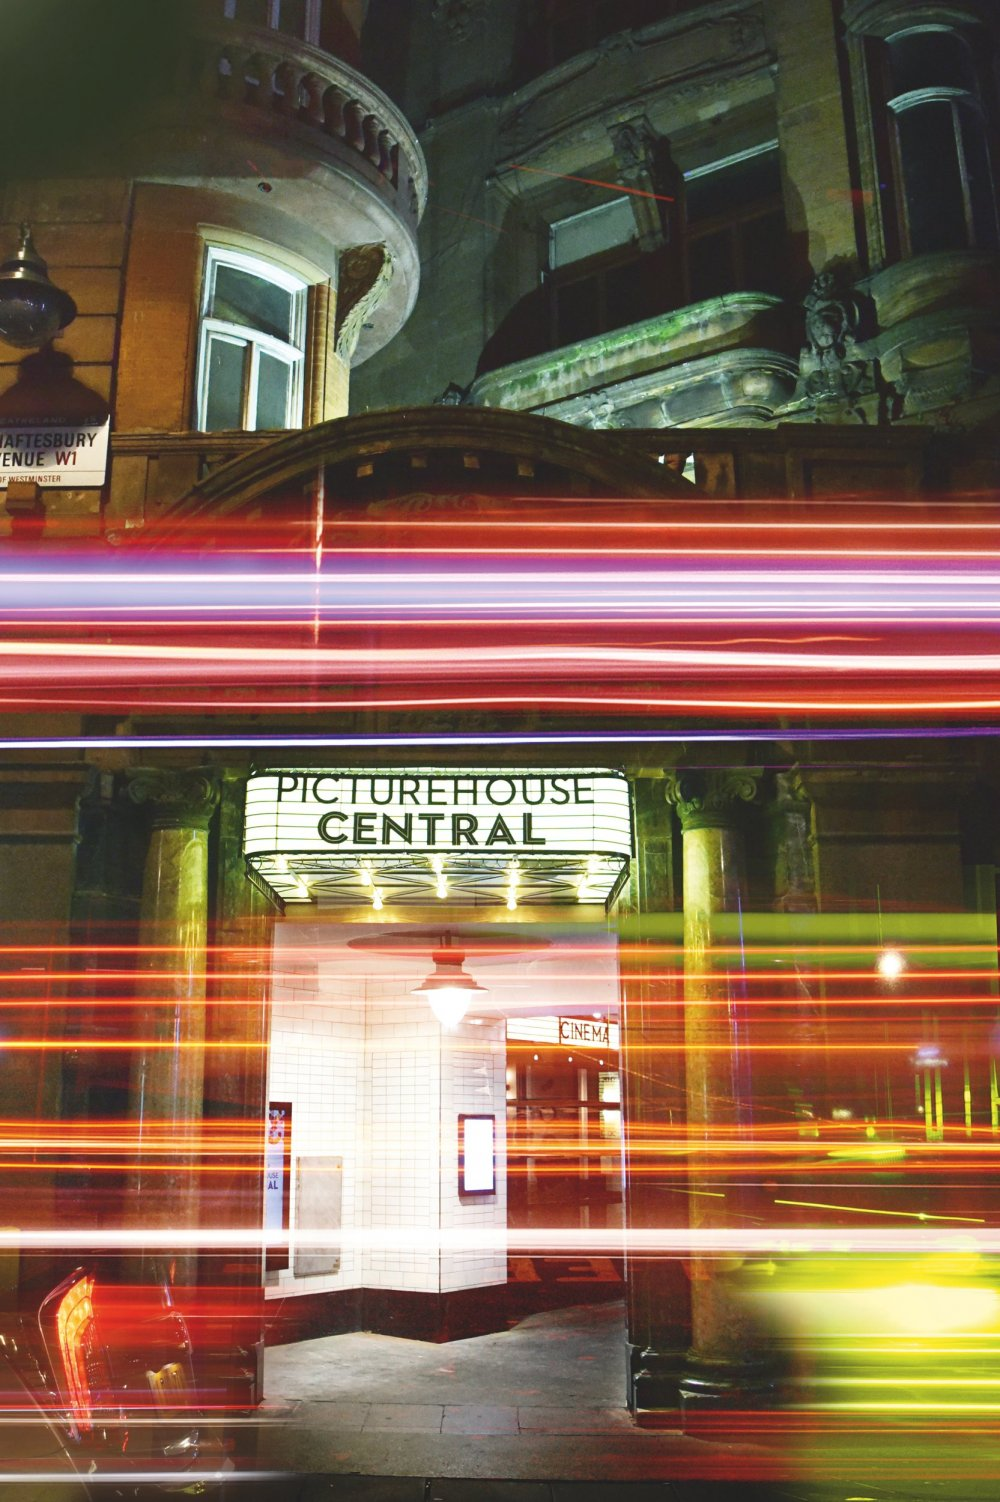 Picturehouse Central, June 2015